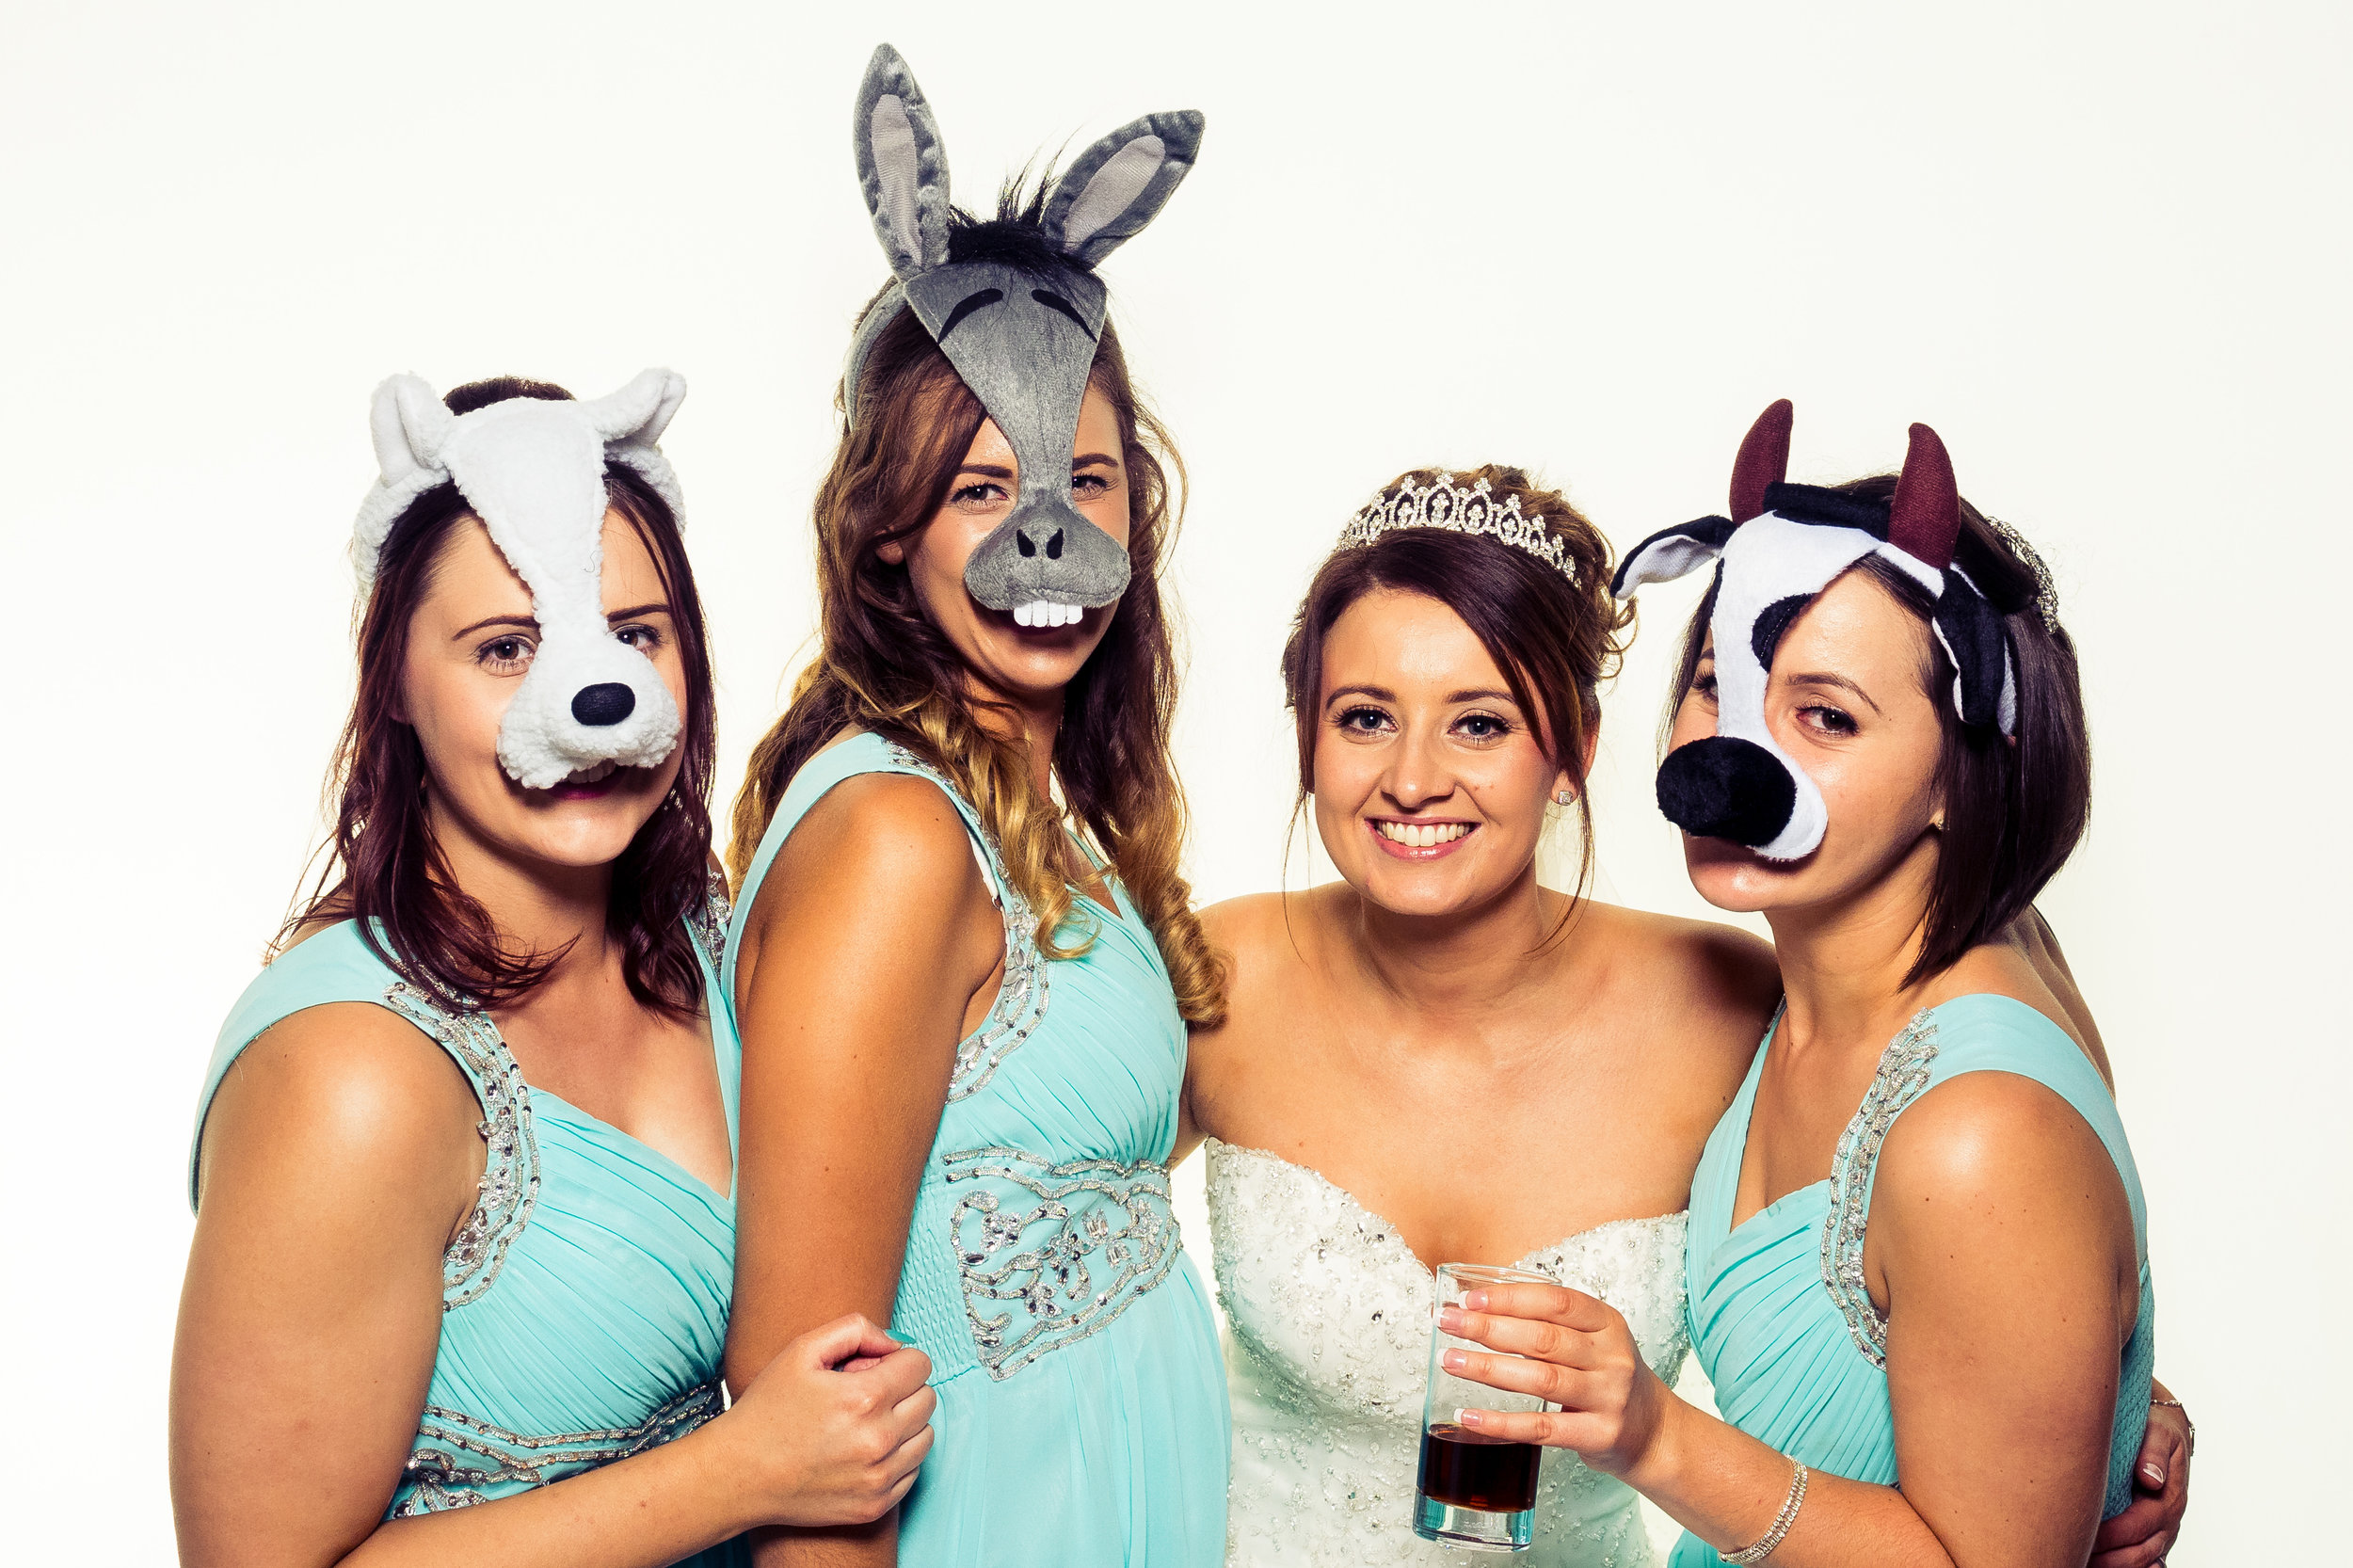 STUDIO QUALITY IMAGES - How often will you have the opportunity to take as many studio quality images of you and your friends? We supply you with the High-Resolution full photos along with an evening of fun and laughter.